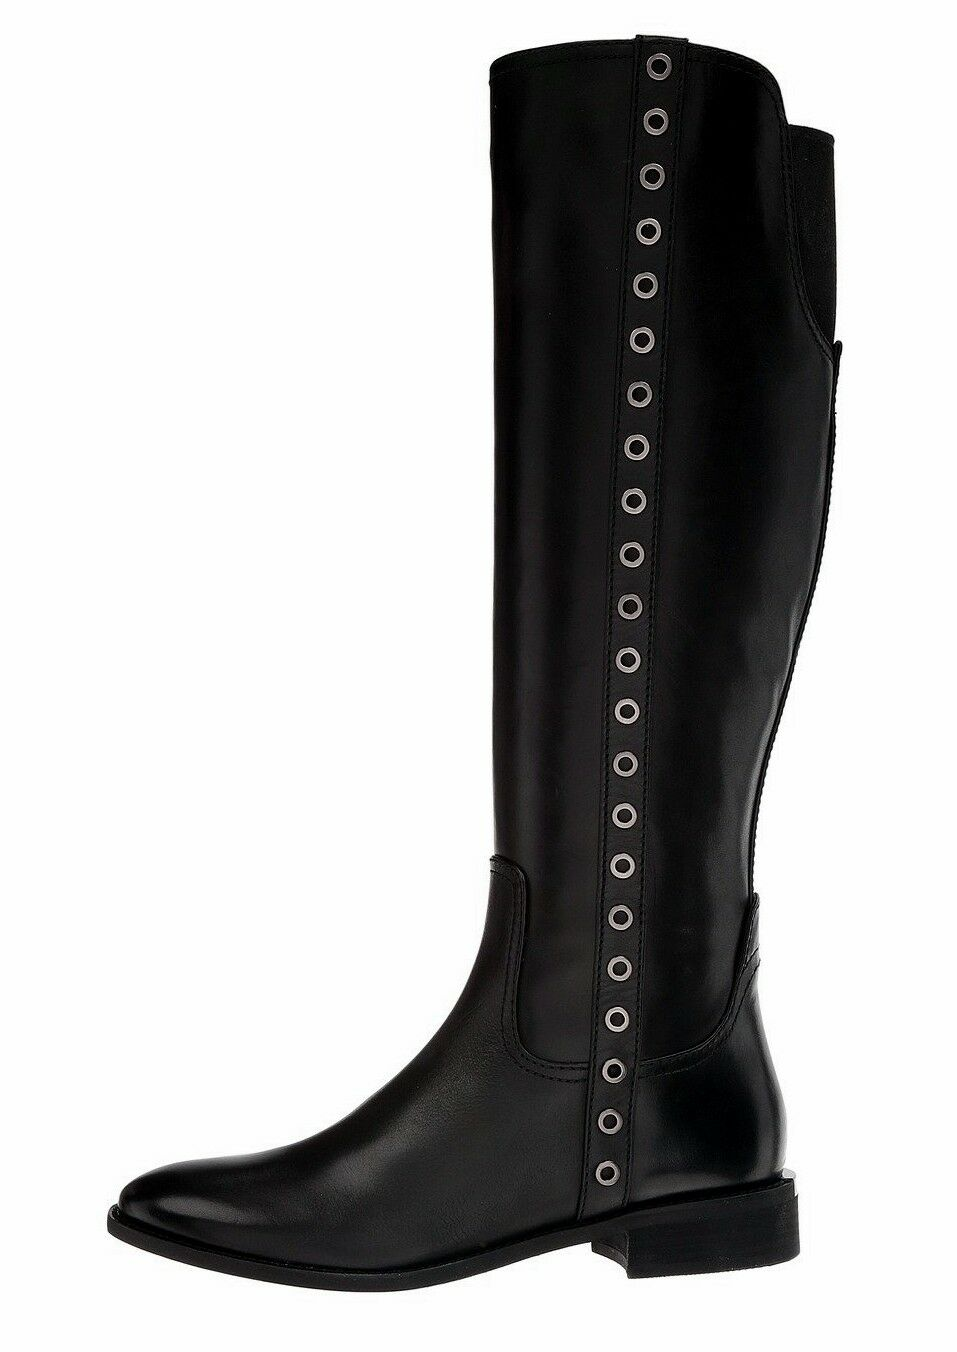 Michael Kors Boots Dora Boat Leather Black Size 38 NEW